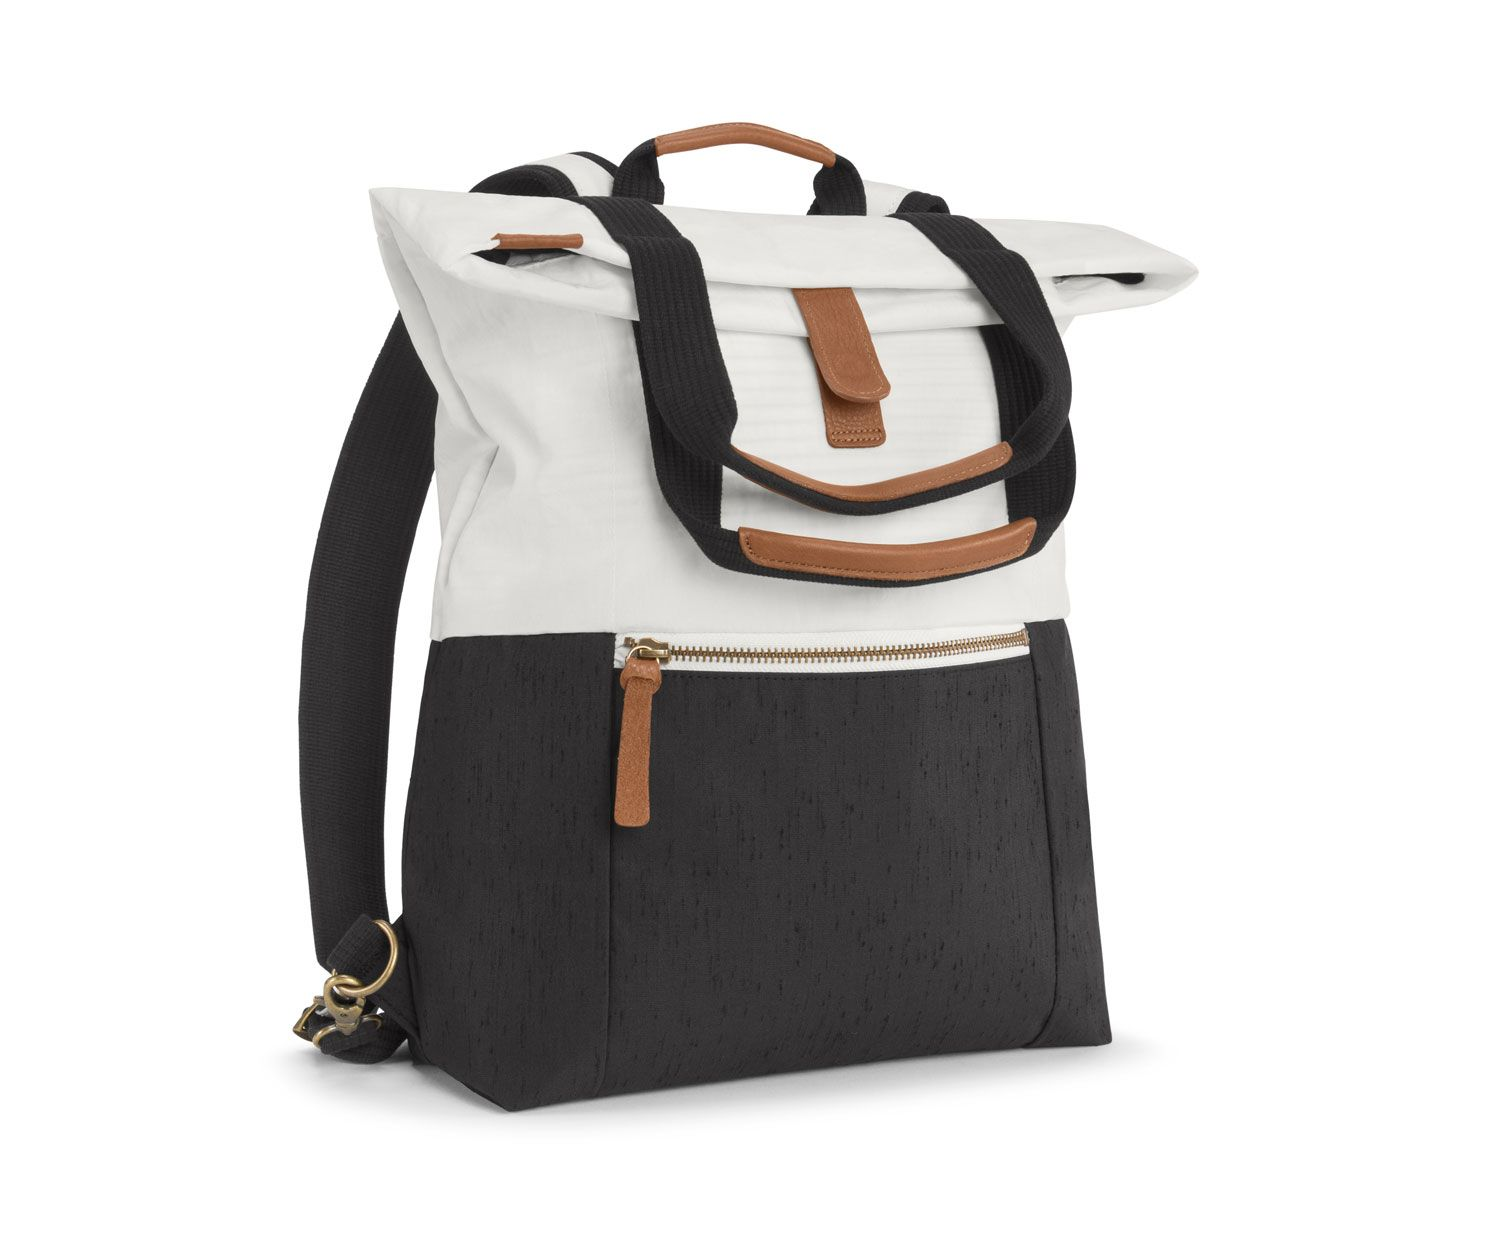 3-in-1 Leather Backpack Laptop Bag Convertible Backpack Minimalist ...